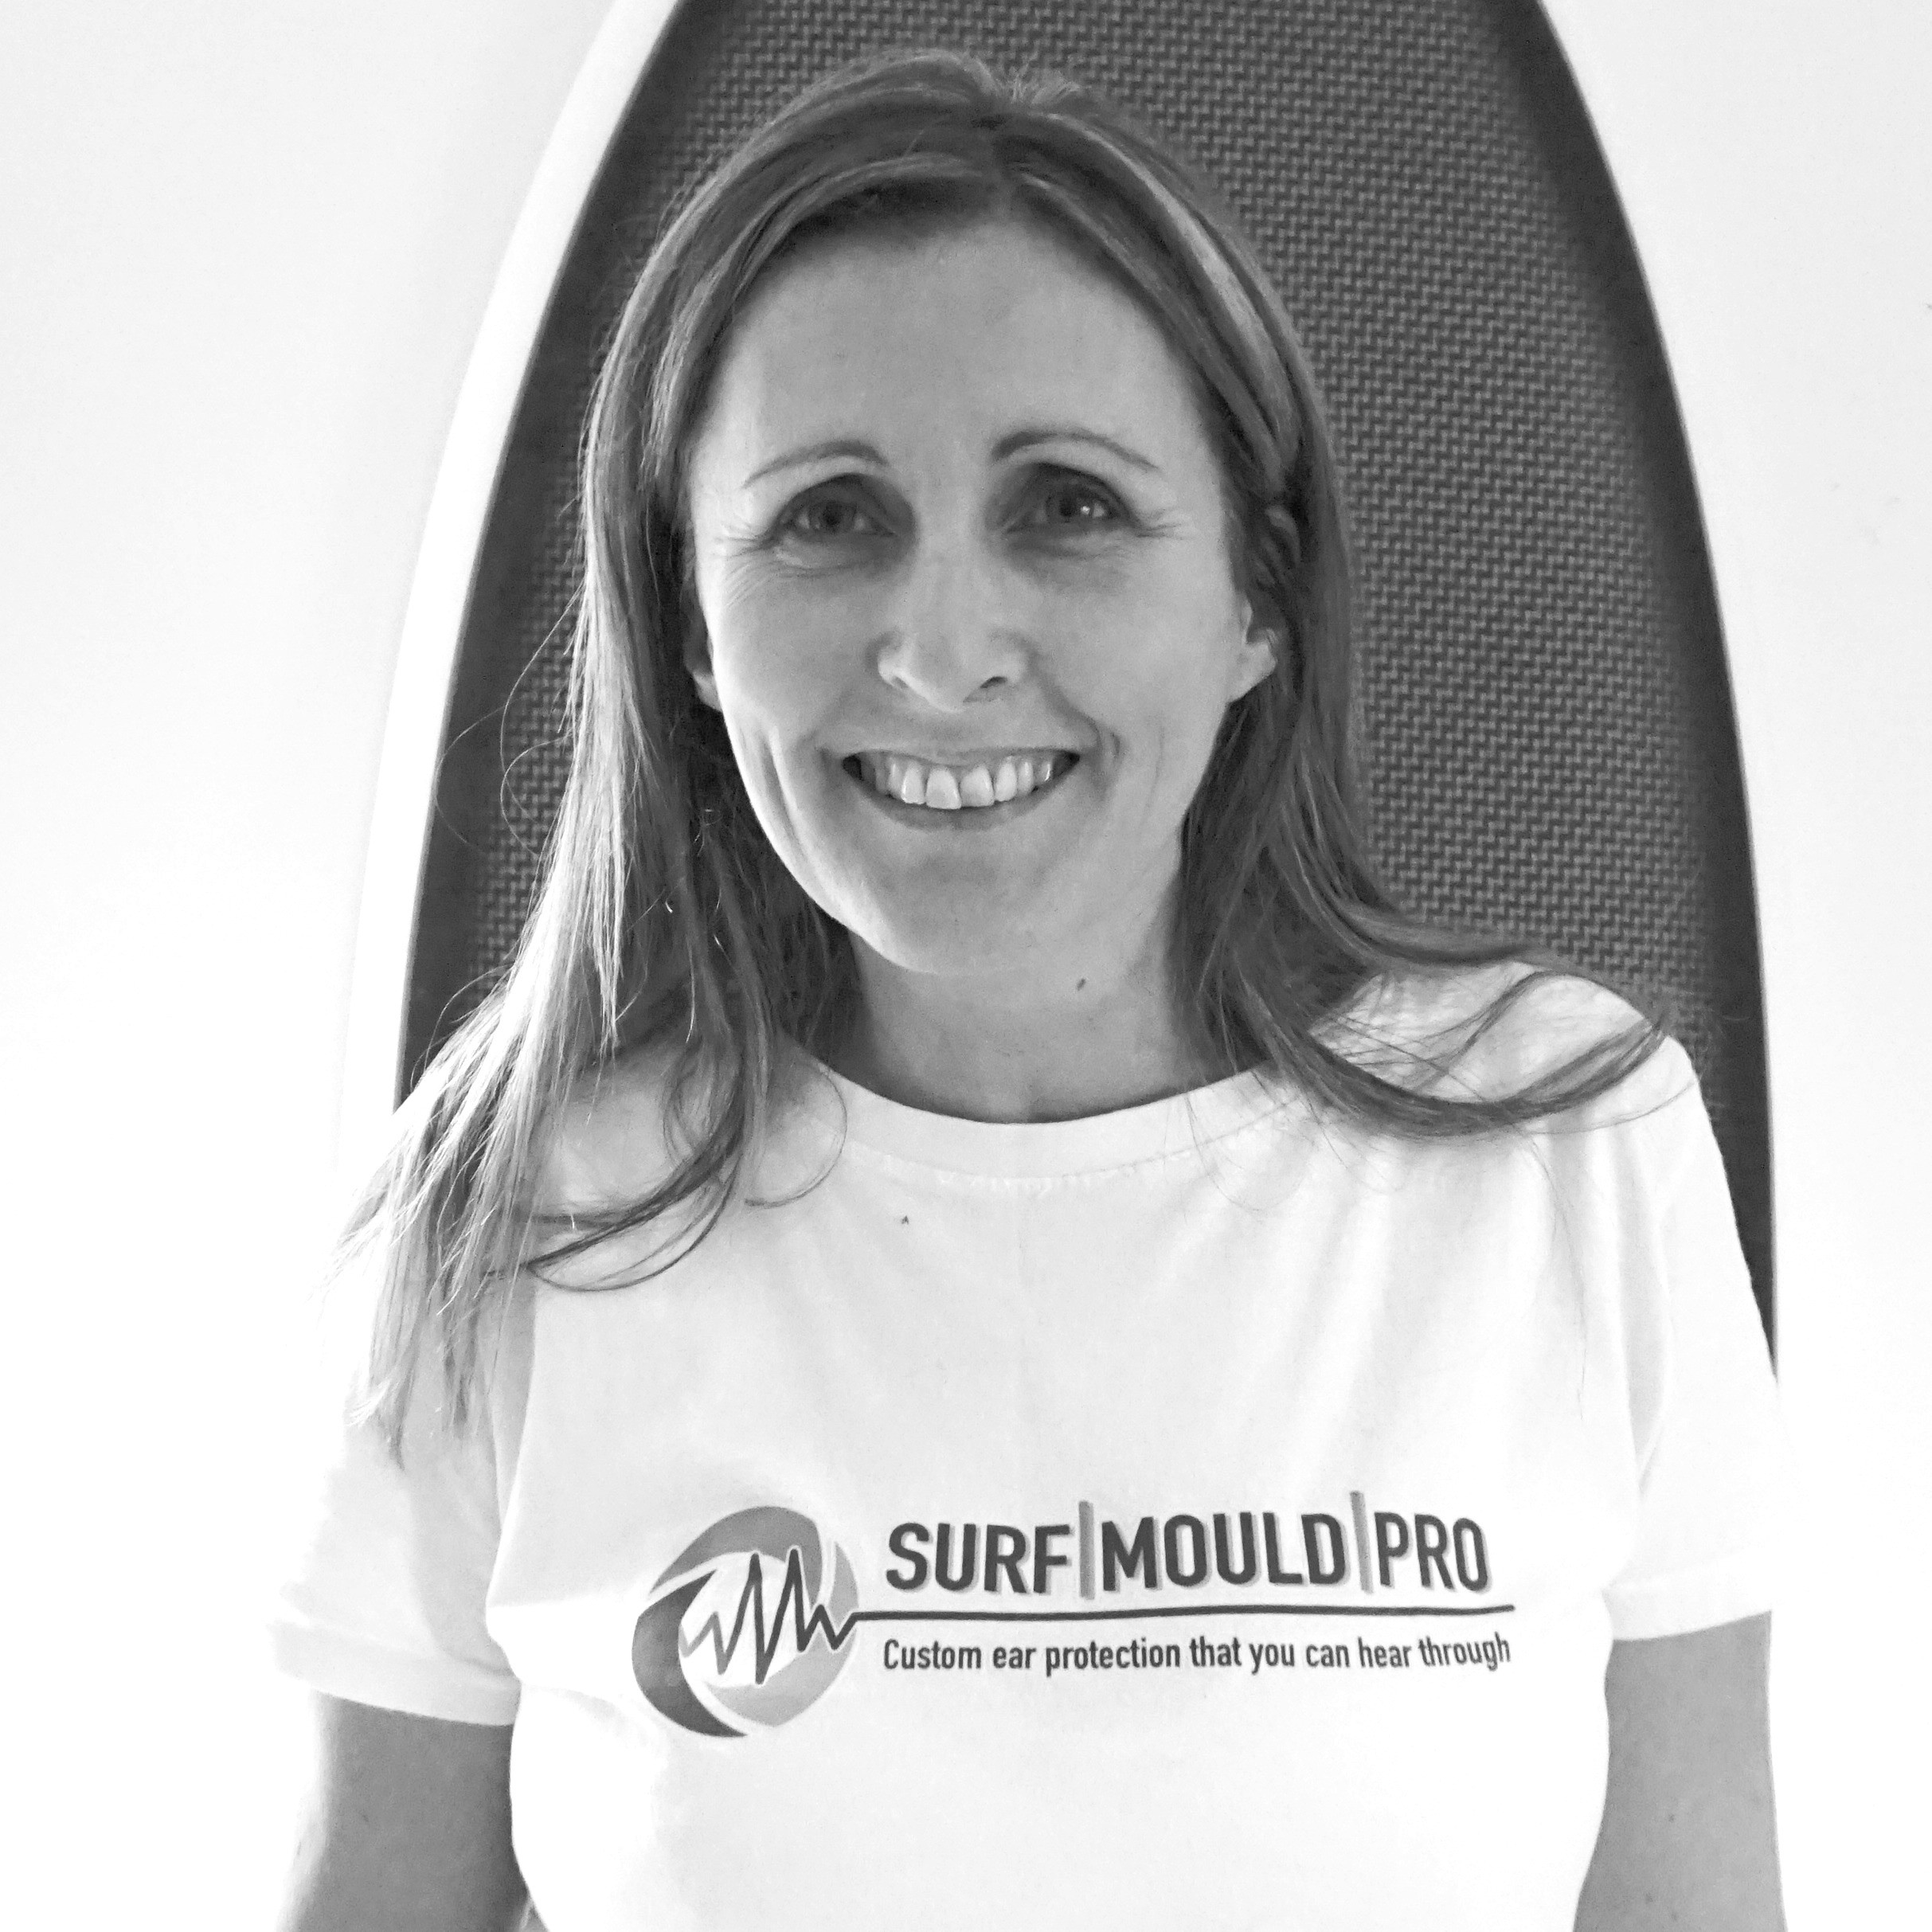 SurfMouldPro at Newquay 07811 809504